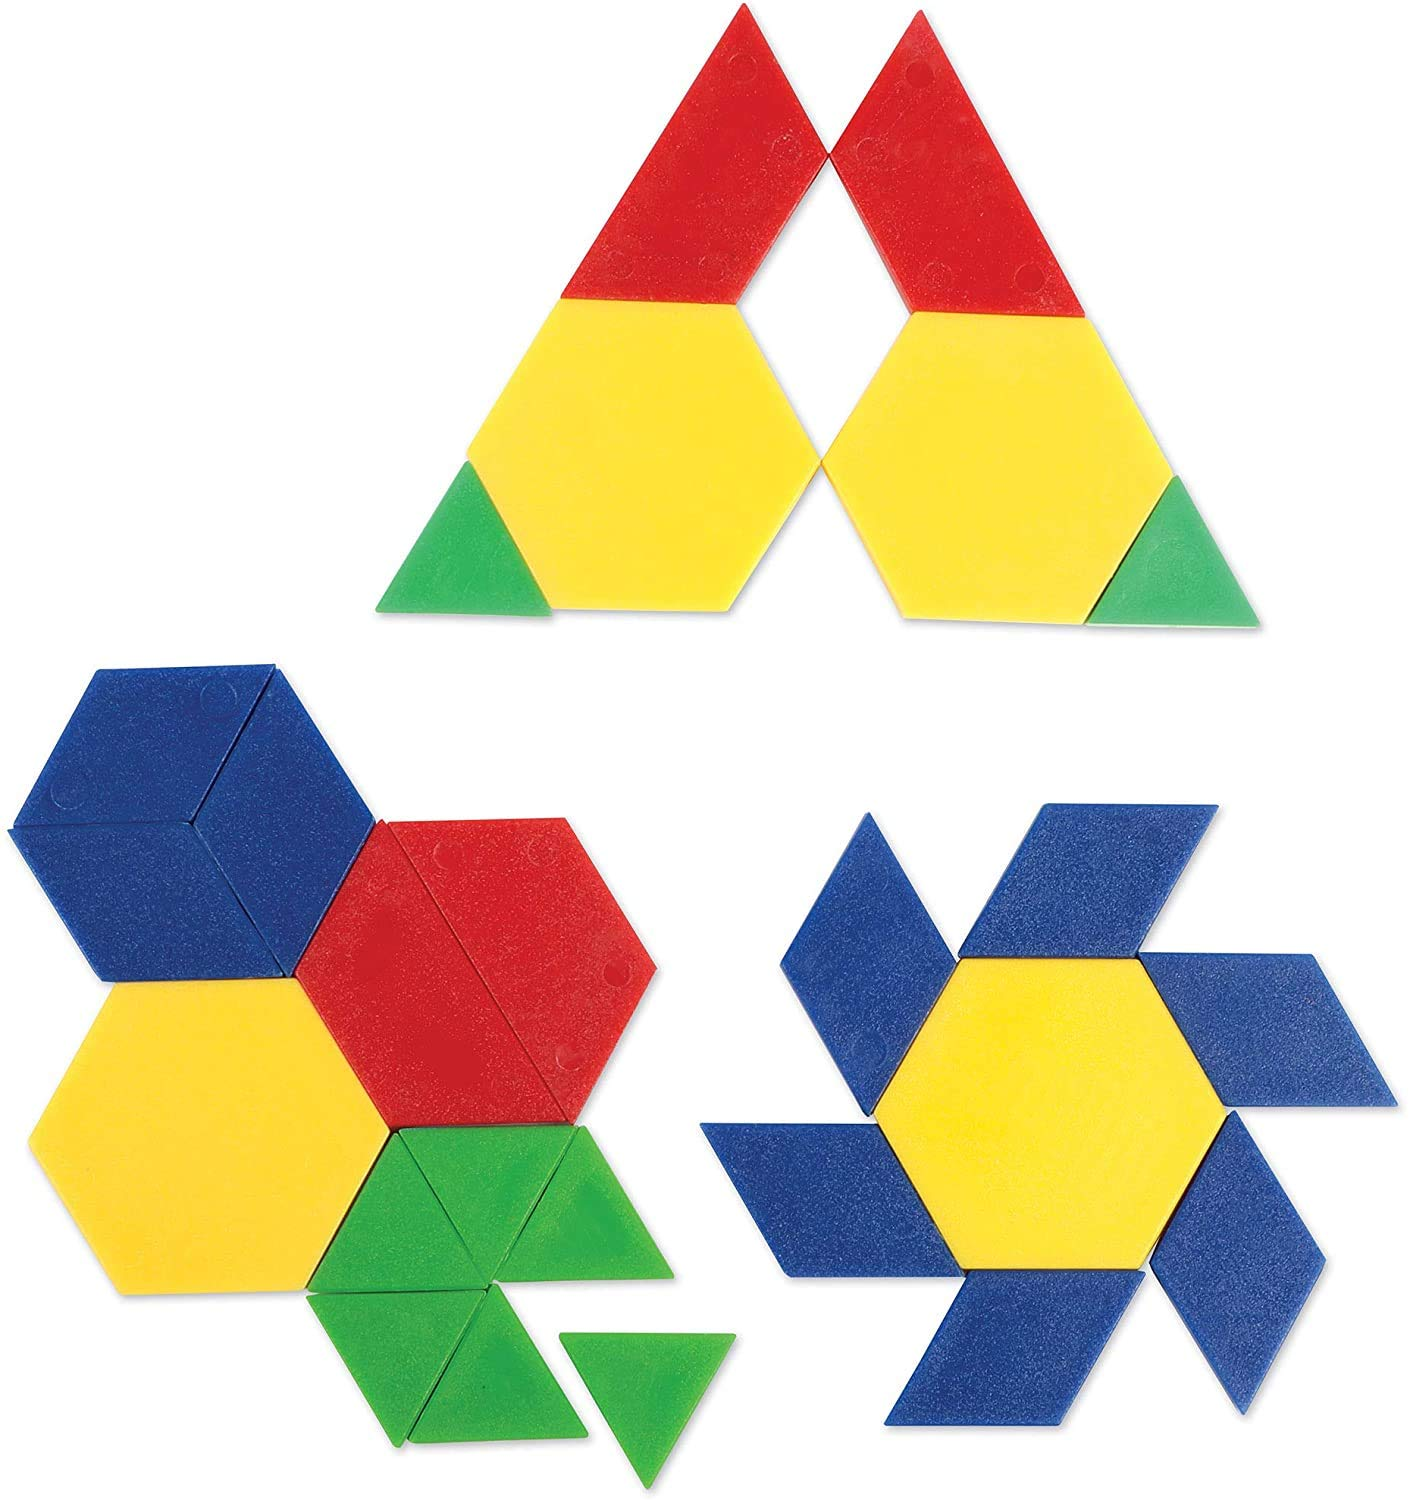 Learning Resources Plastic Pattern Blocks .5cm, Counting & Sorting, Early Math Concepts, Set of 100 Blocks, Grades PreK+Ages 3+